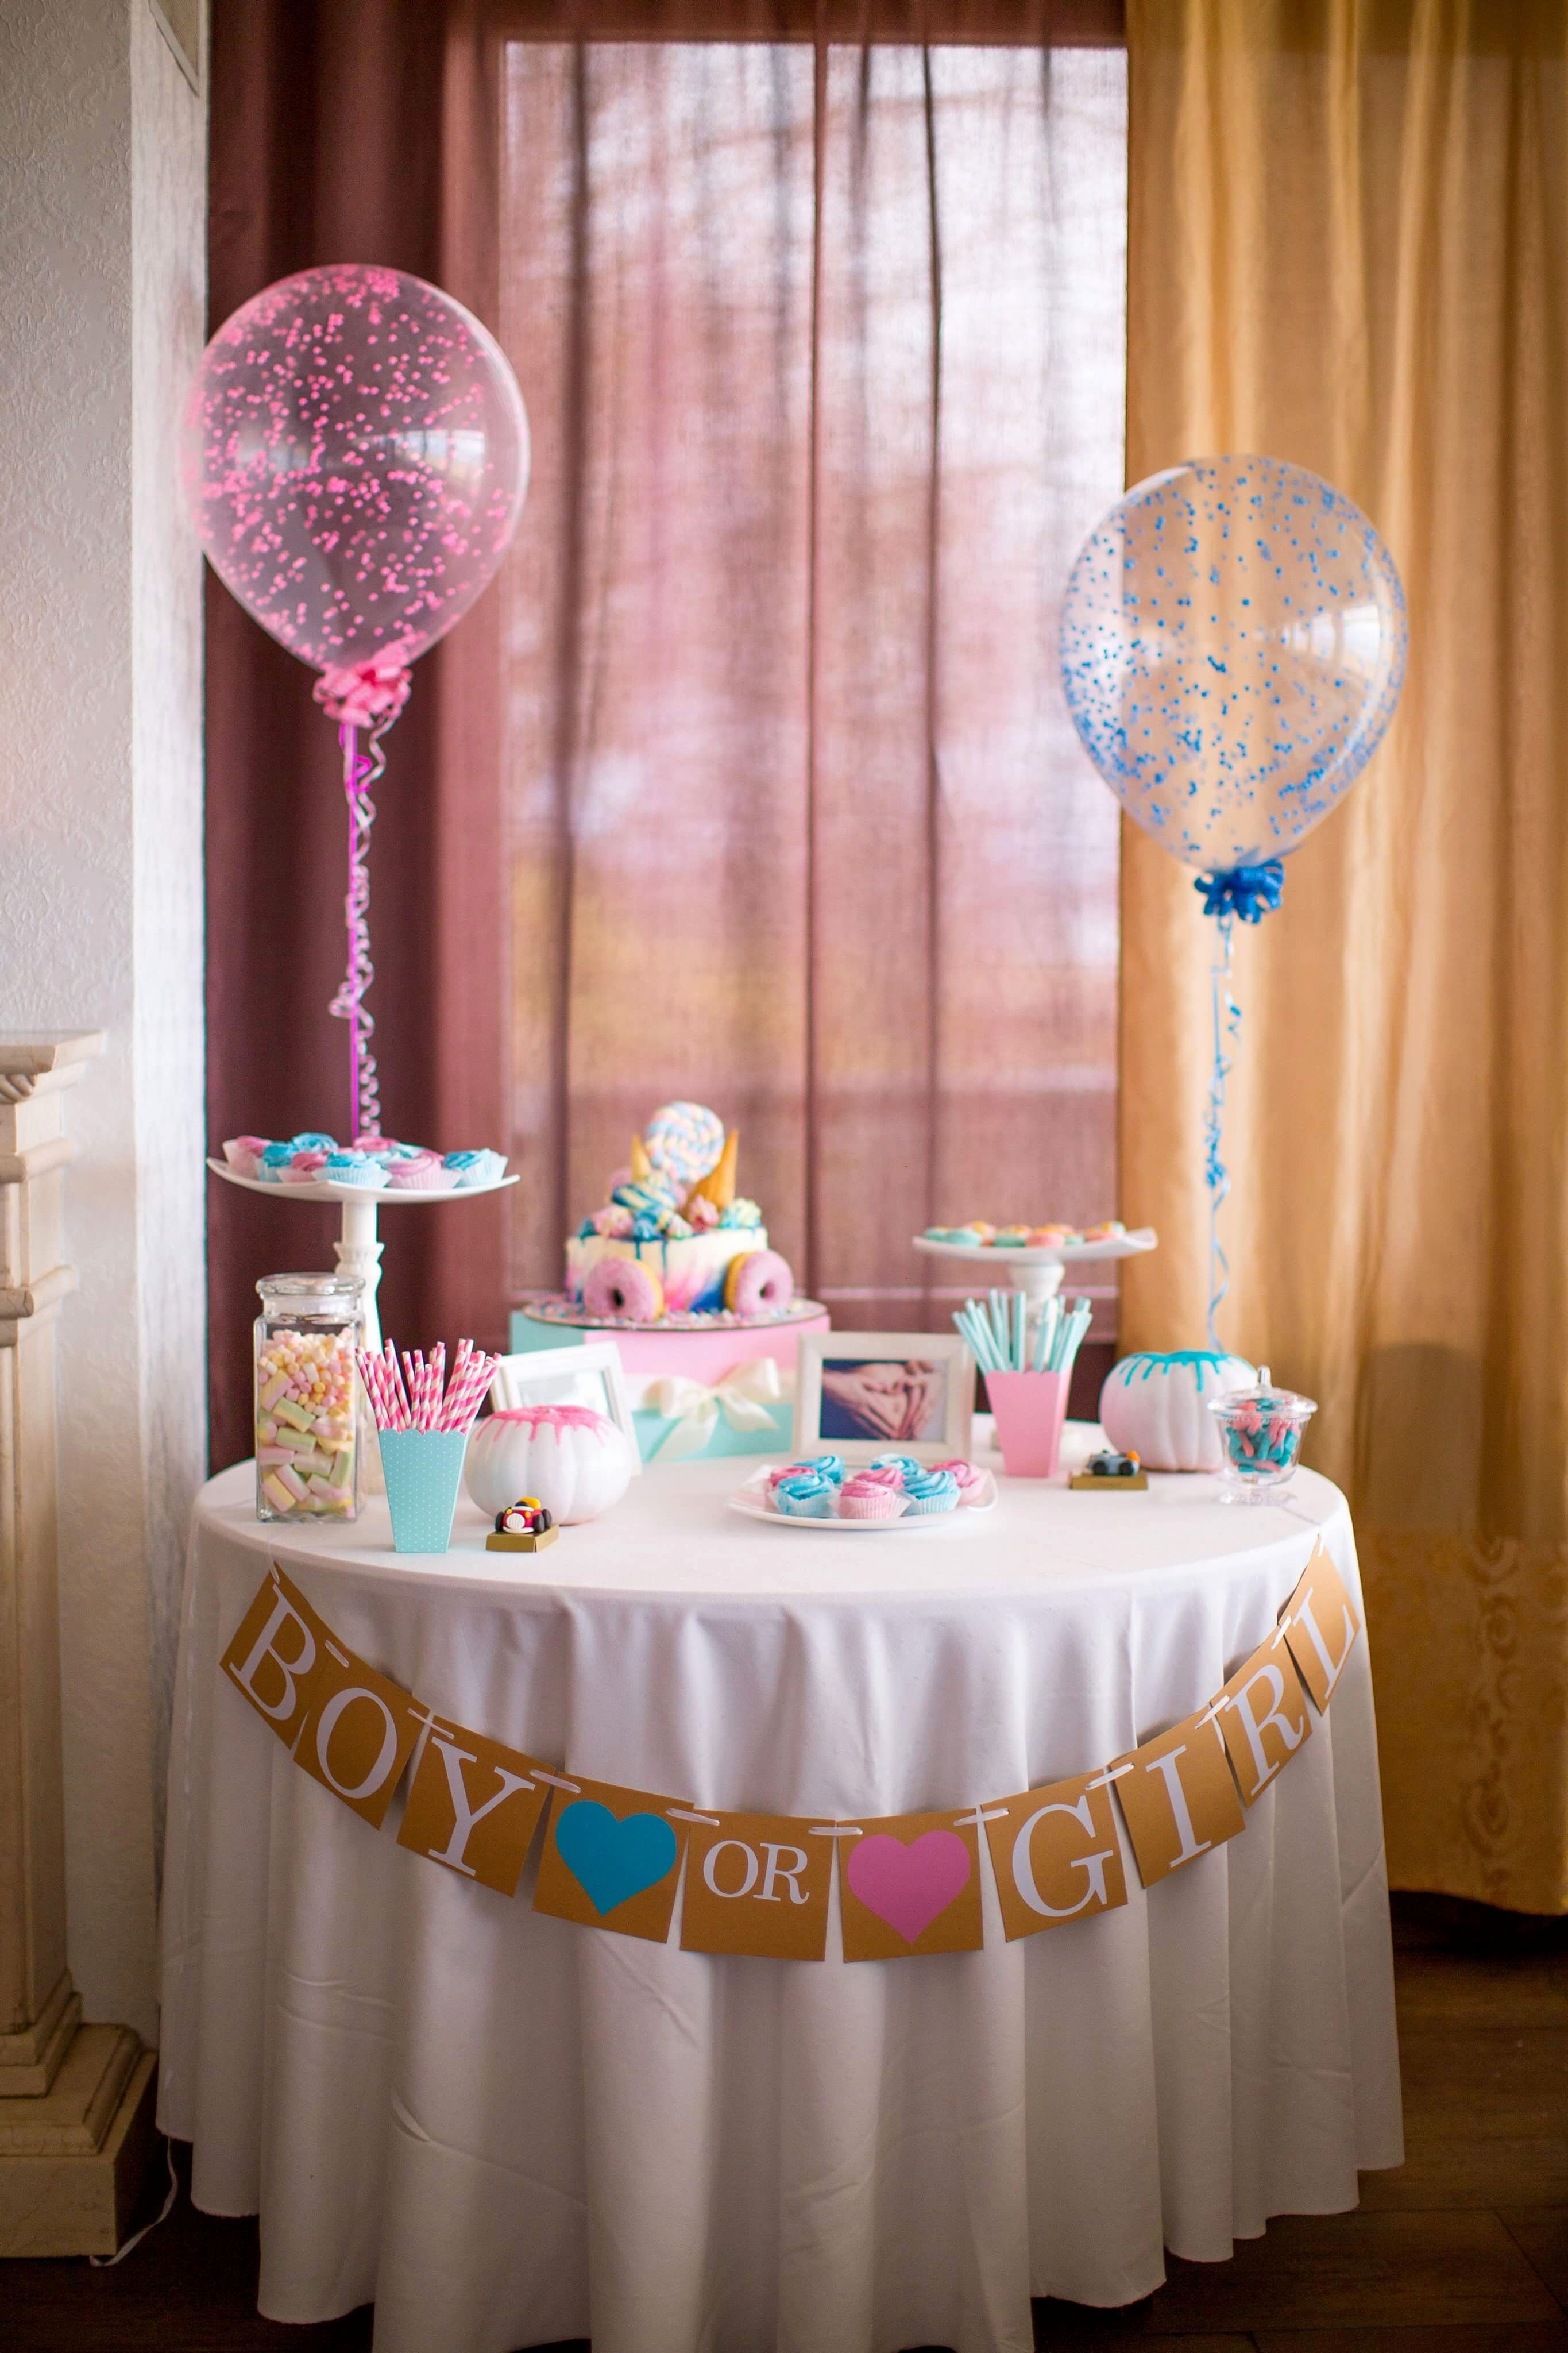 Girl Or Boy Sweet Treats To Share The Secret Gender Reveal Decorations Gender Reveal Decorations Diy Simple Gender Reveal